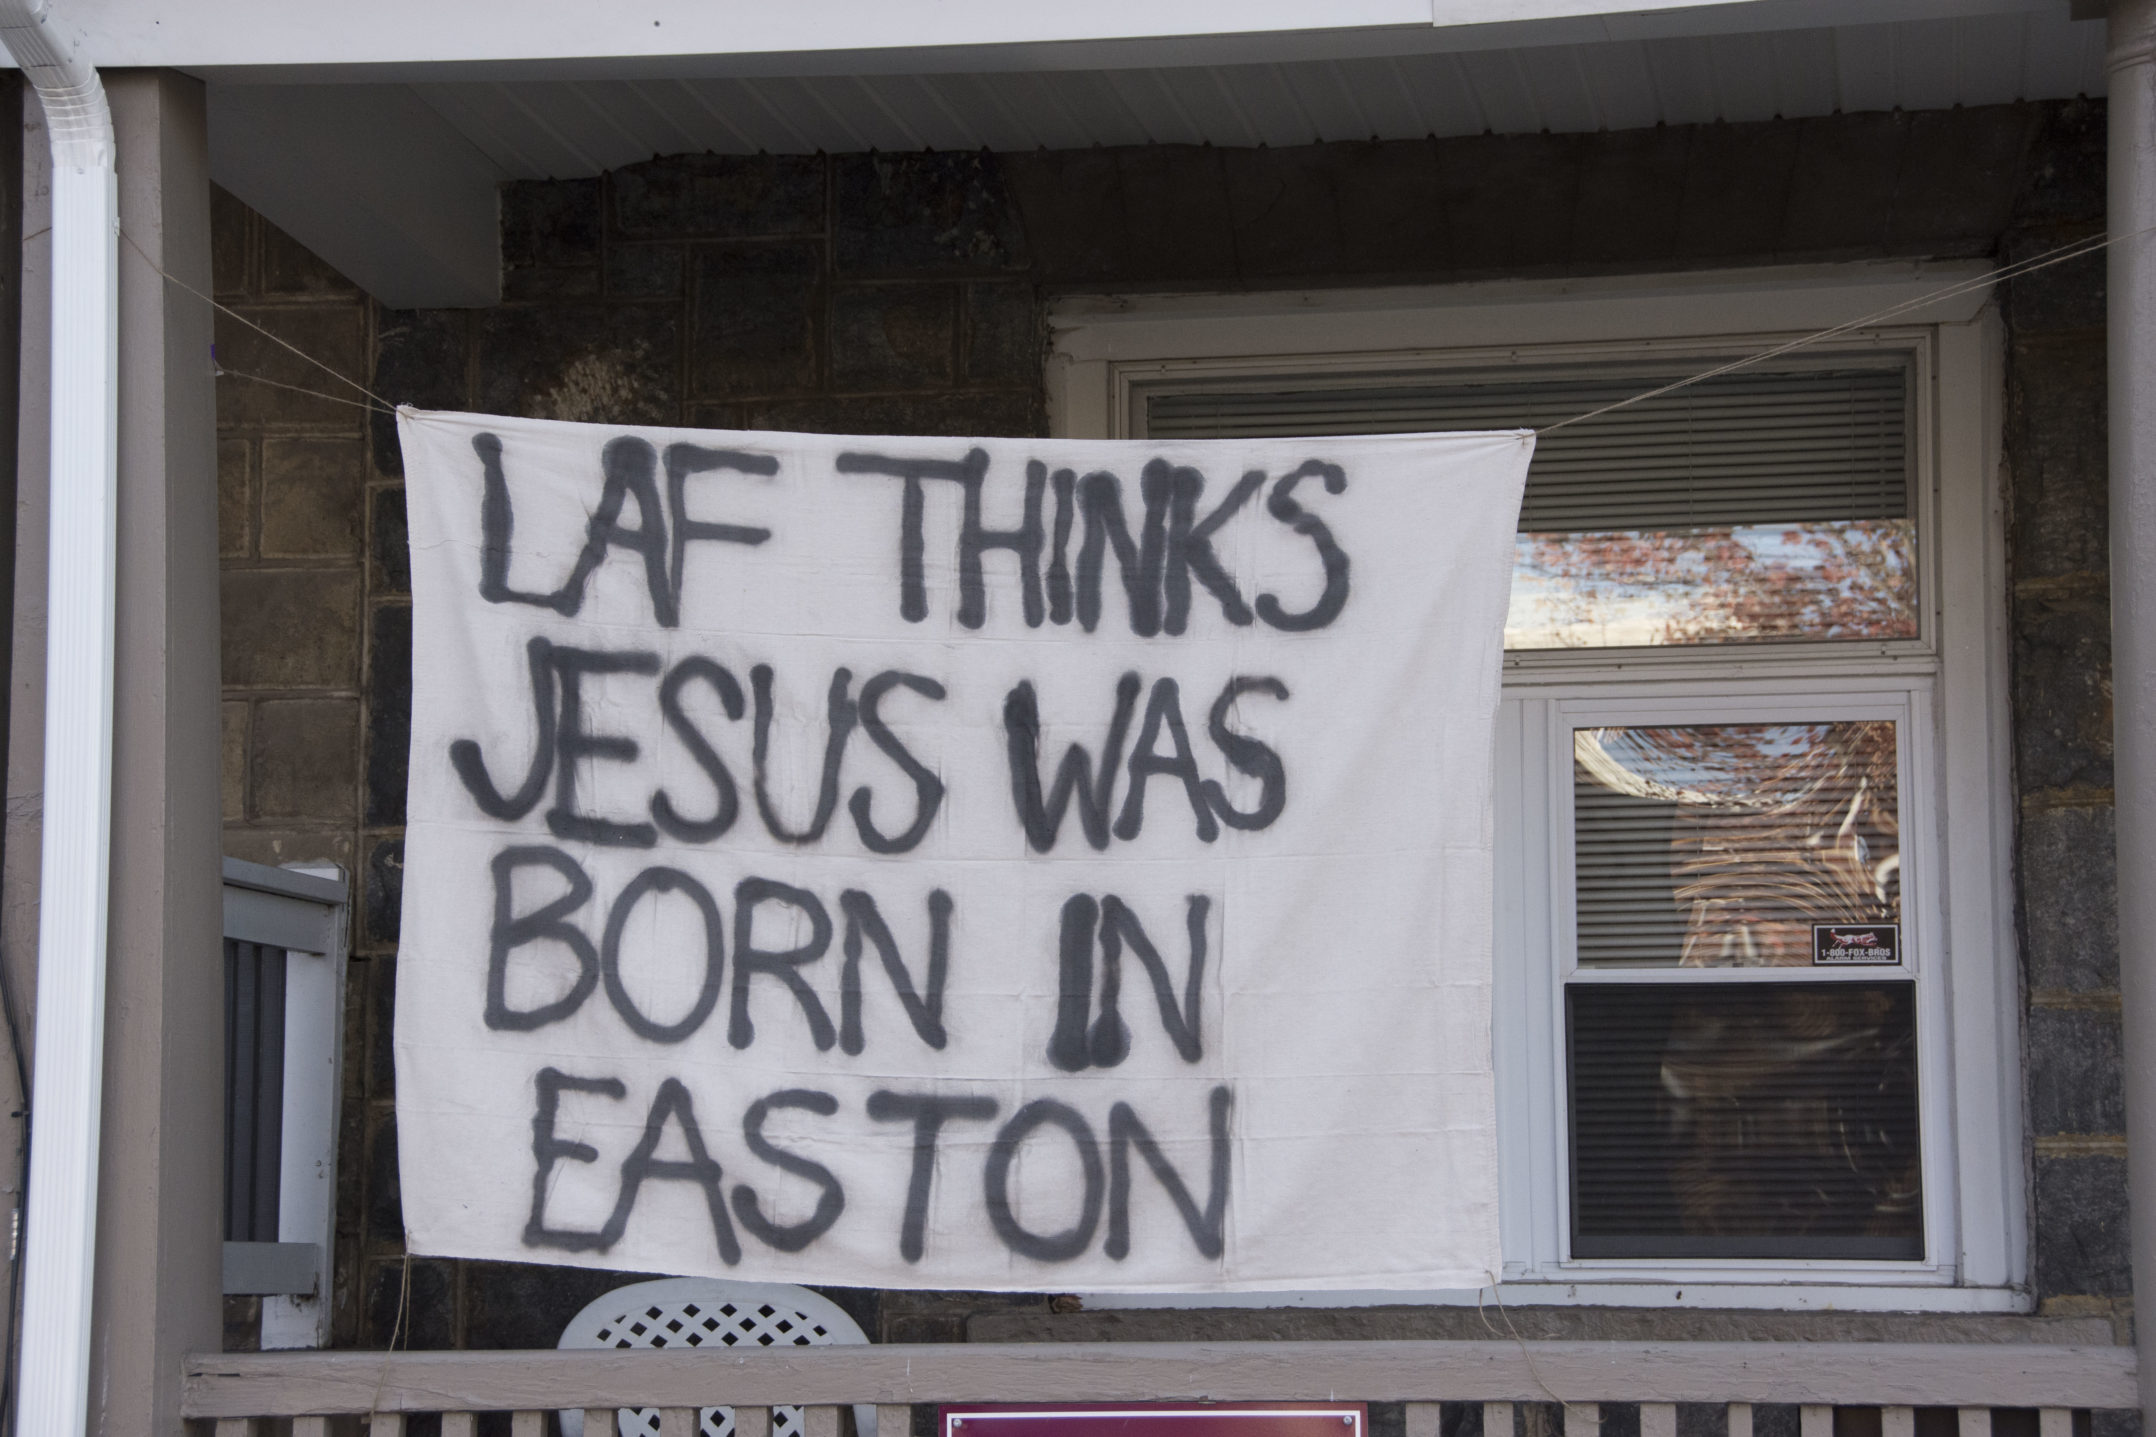 "A banner reading ""Laf thinks Jesus was born in Easton"" hangs from a house on Birkel Avenue on Wednesday, Nov. 15, 2017. The banner is referencing Lafayette's location in Easton versus Lehigh's location in Bethlehem. (Annie Henry/B&W Staff)"